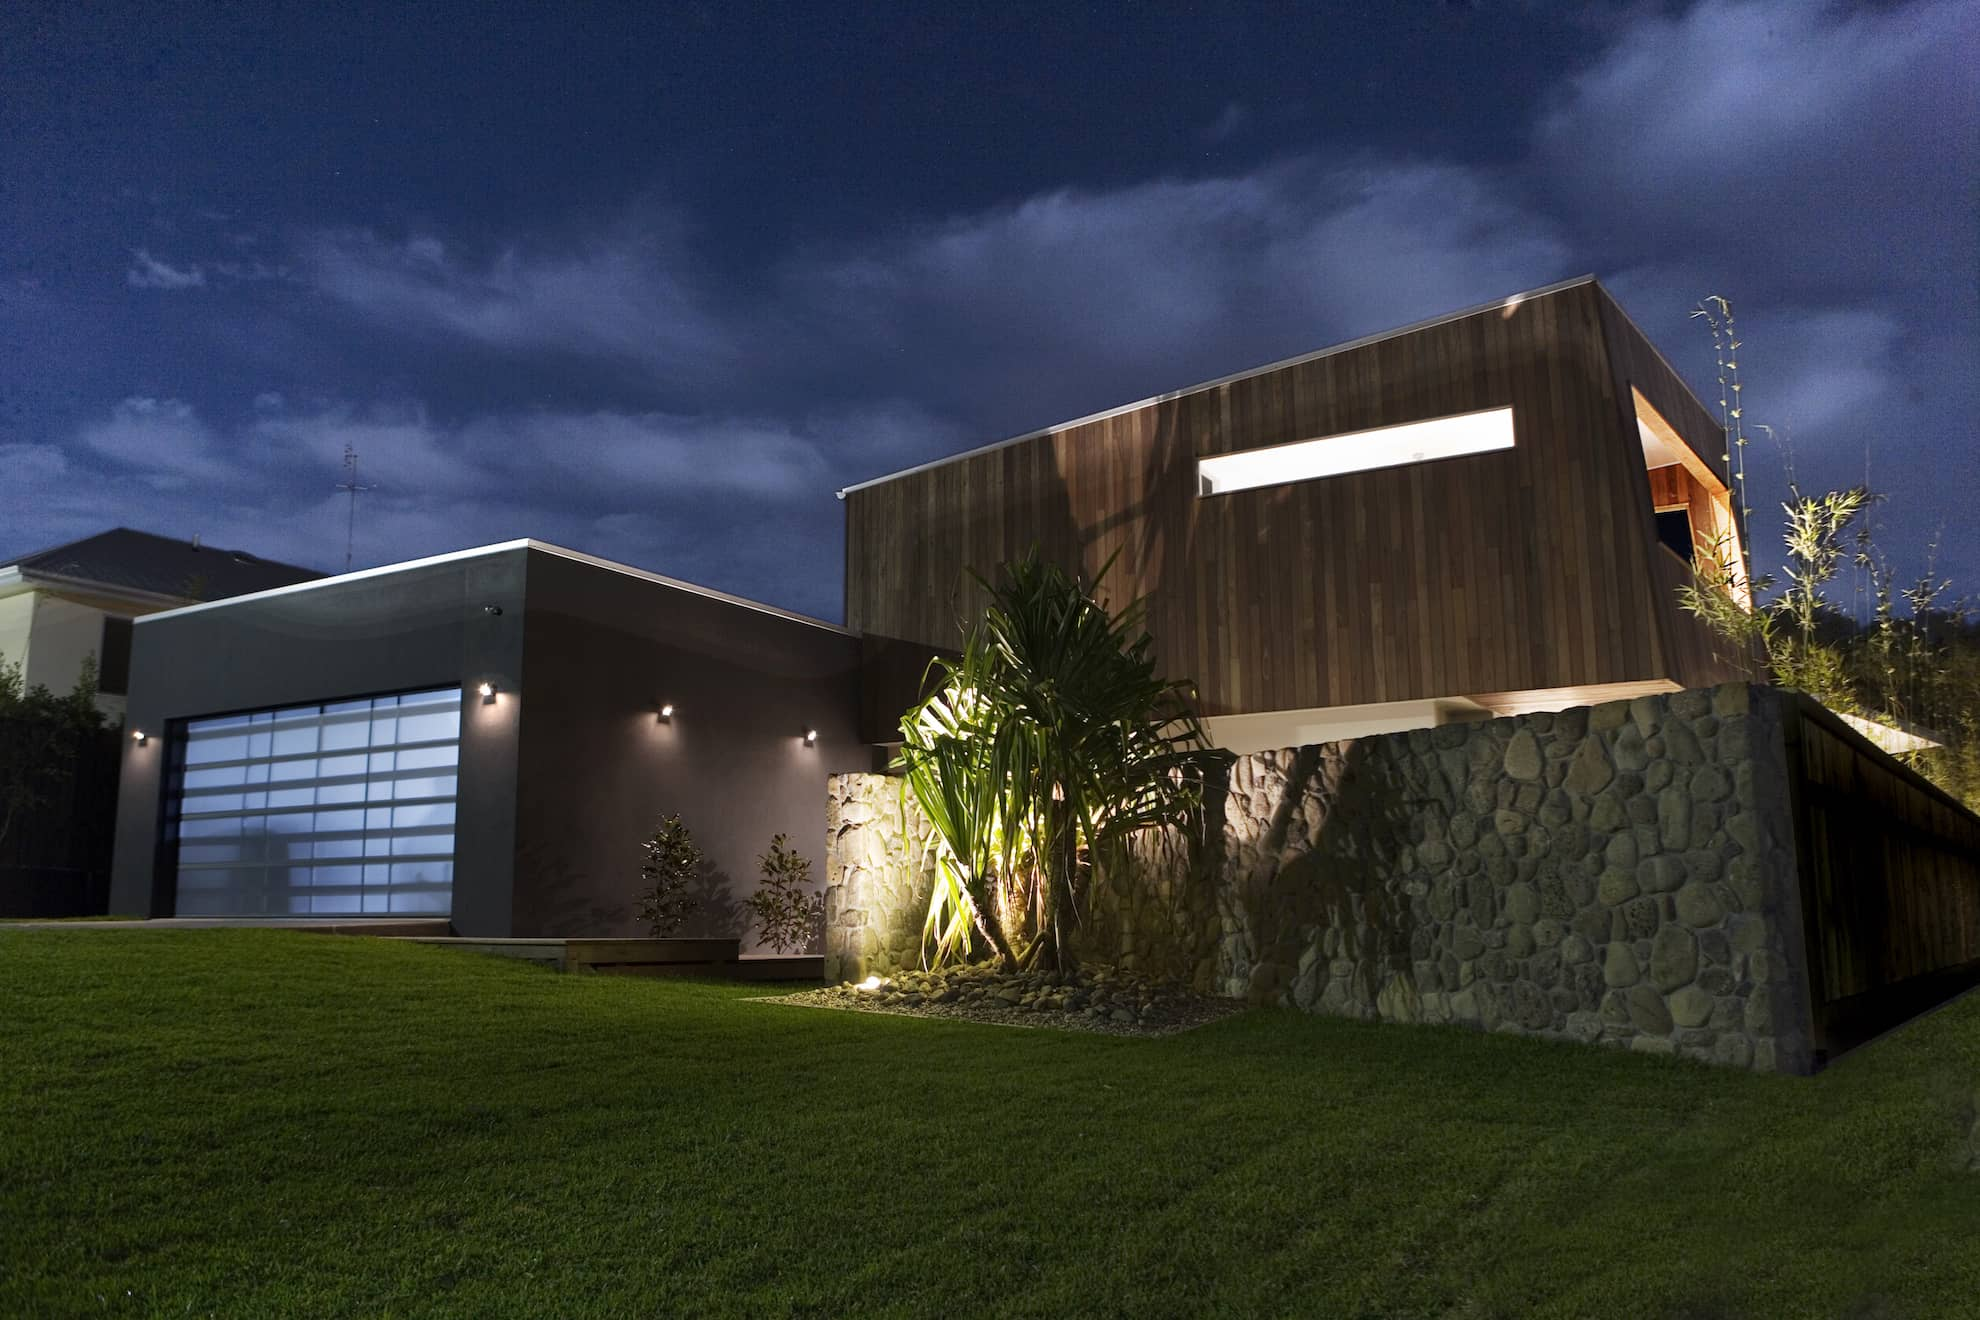 Compass Place project by mdesign, a building design practice that operates on the Sunshine Coast.